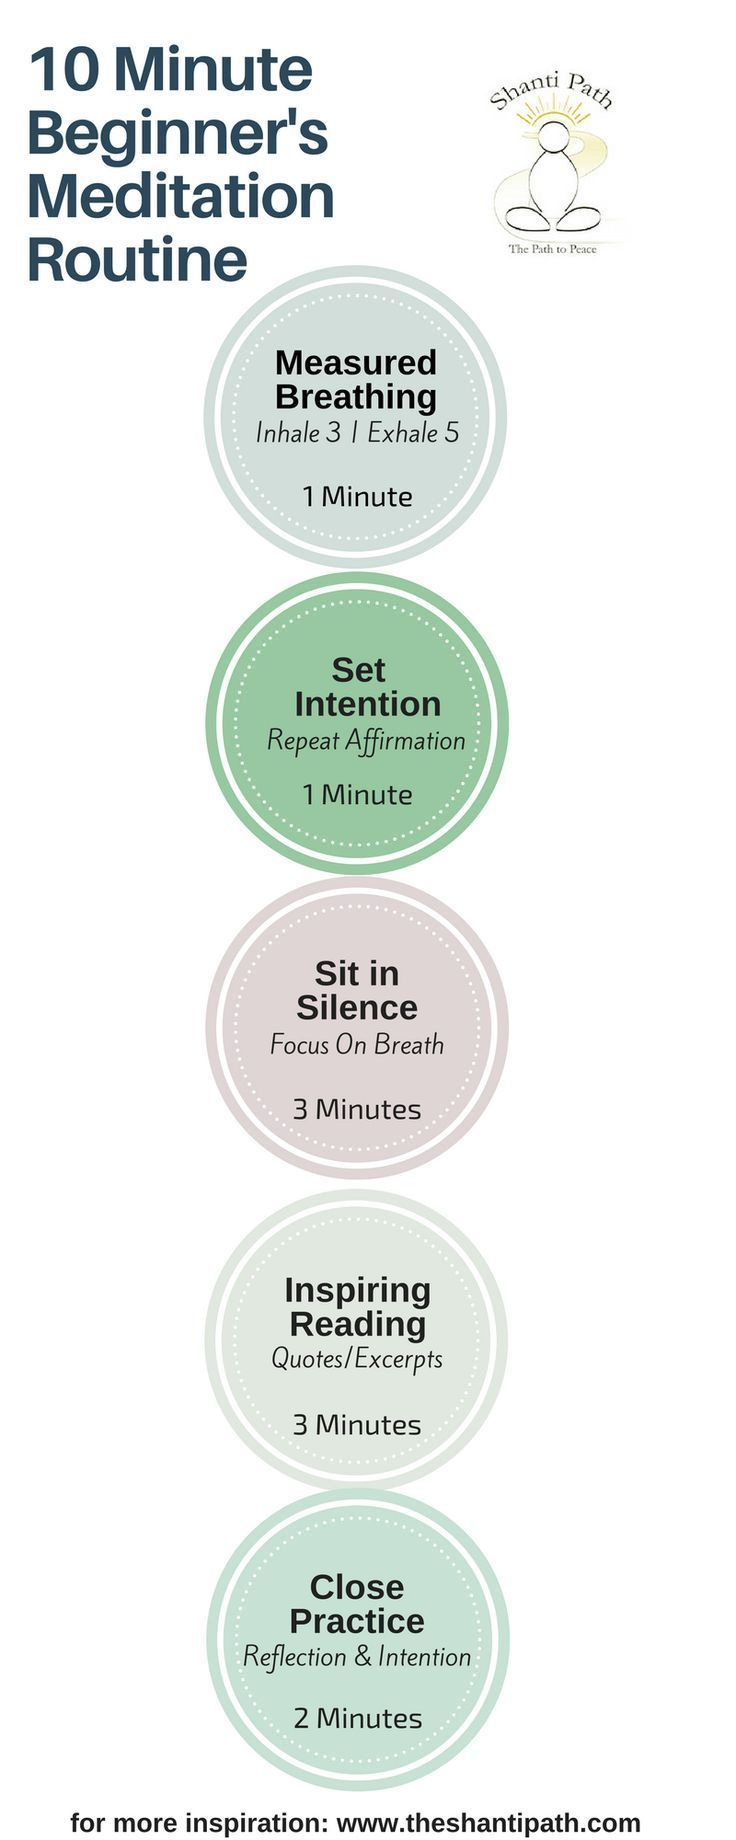 10 Minute Beginner's Meditation Routine